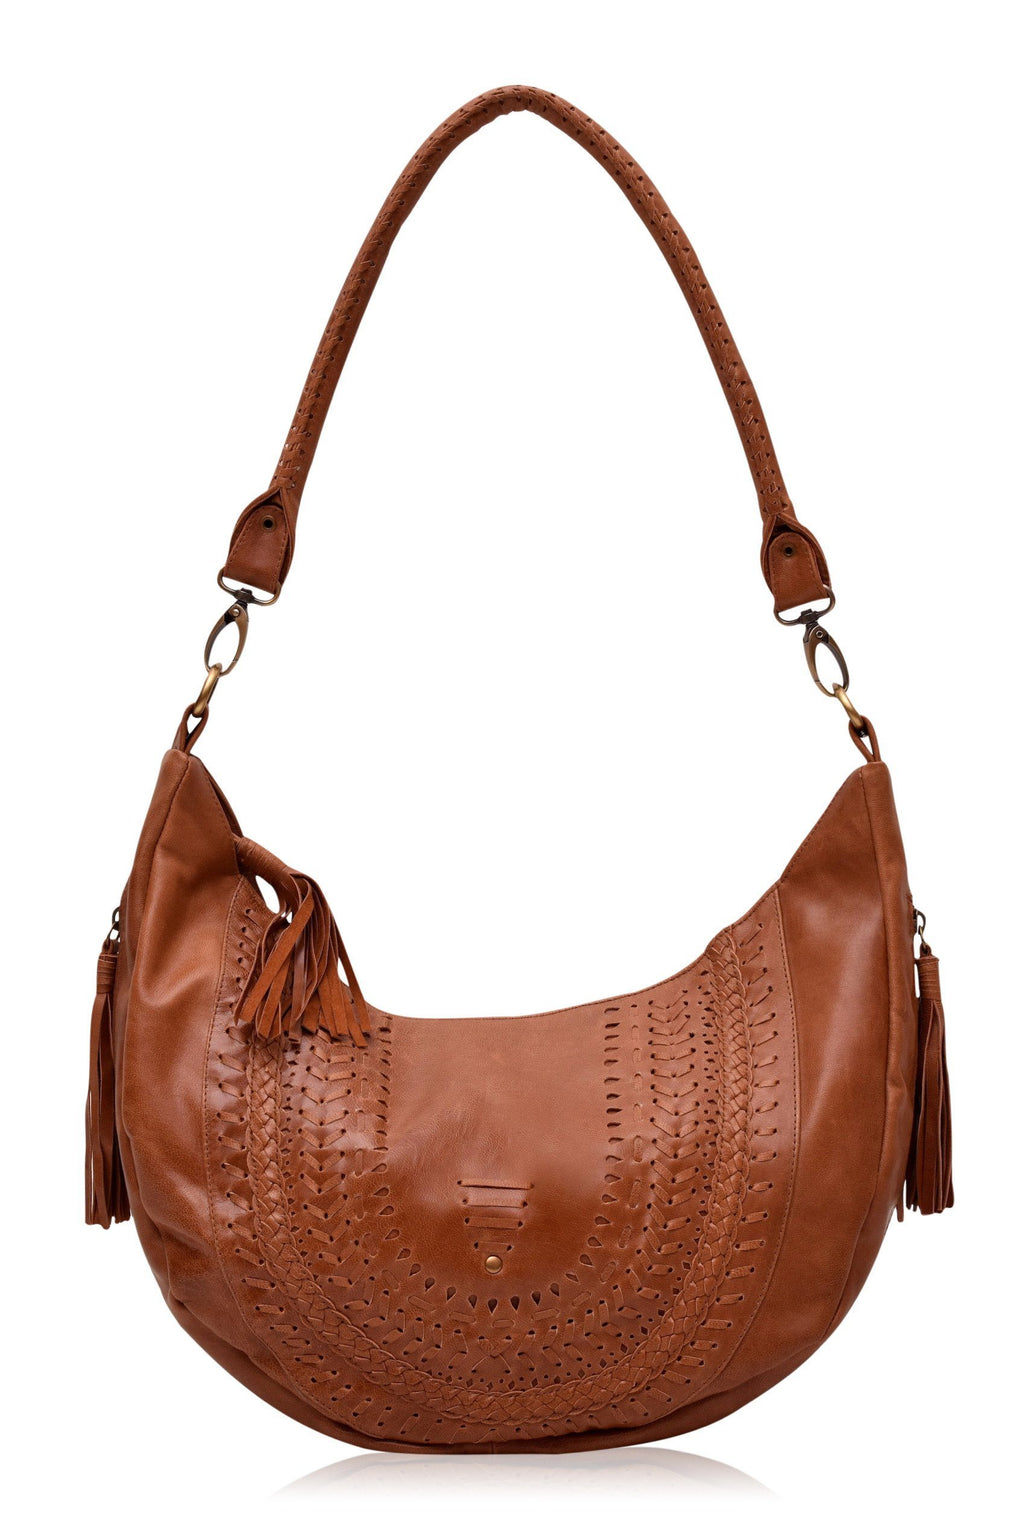 Leather Bag - Elysian Coast Leather Crossbody Bag